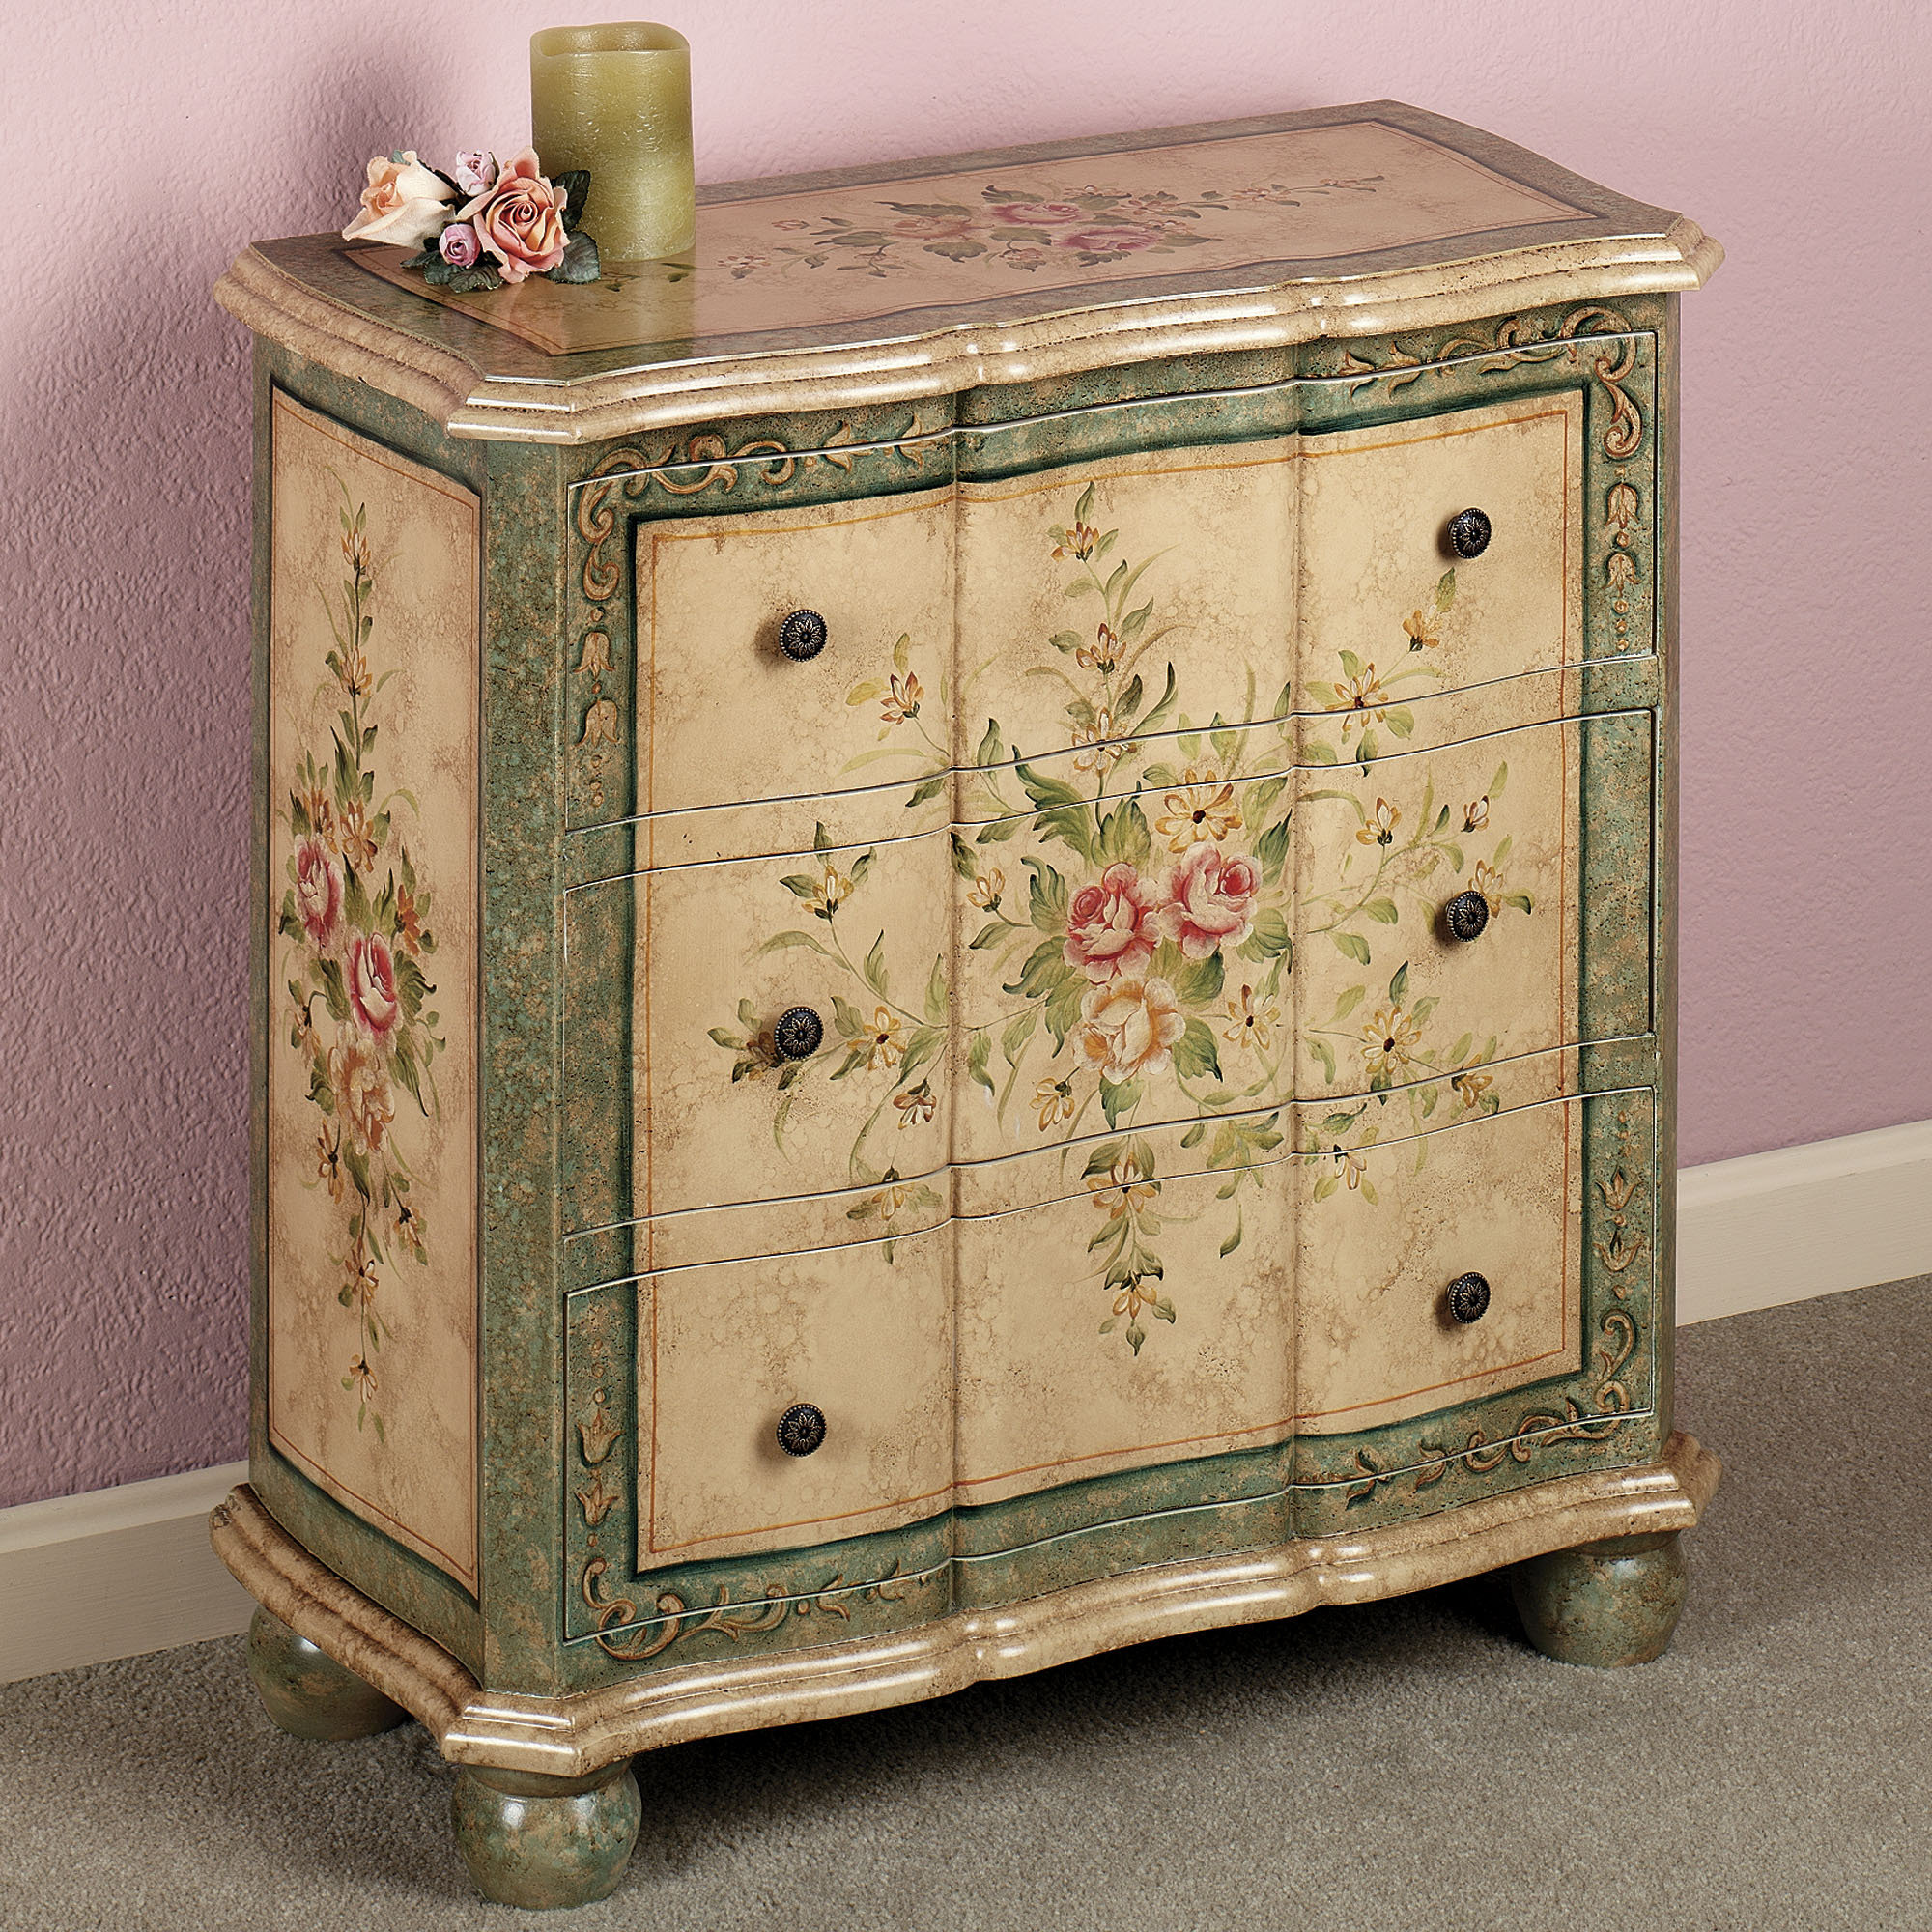 Simple hand painted moroccan furniture - Google Search hand painted furniture ideas